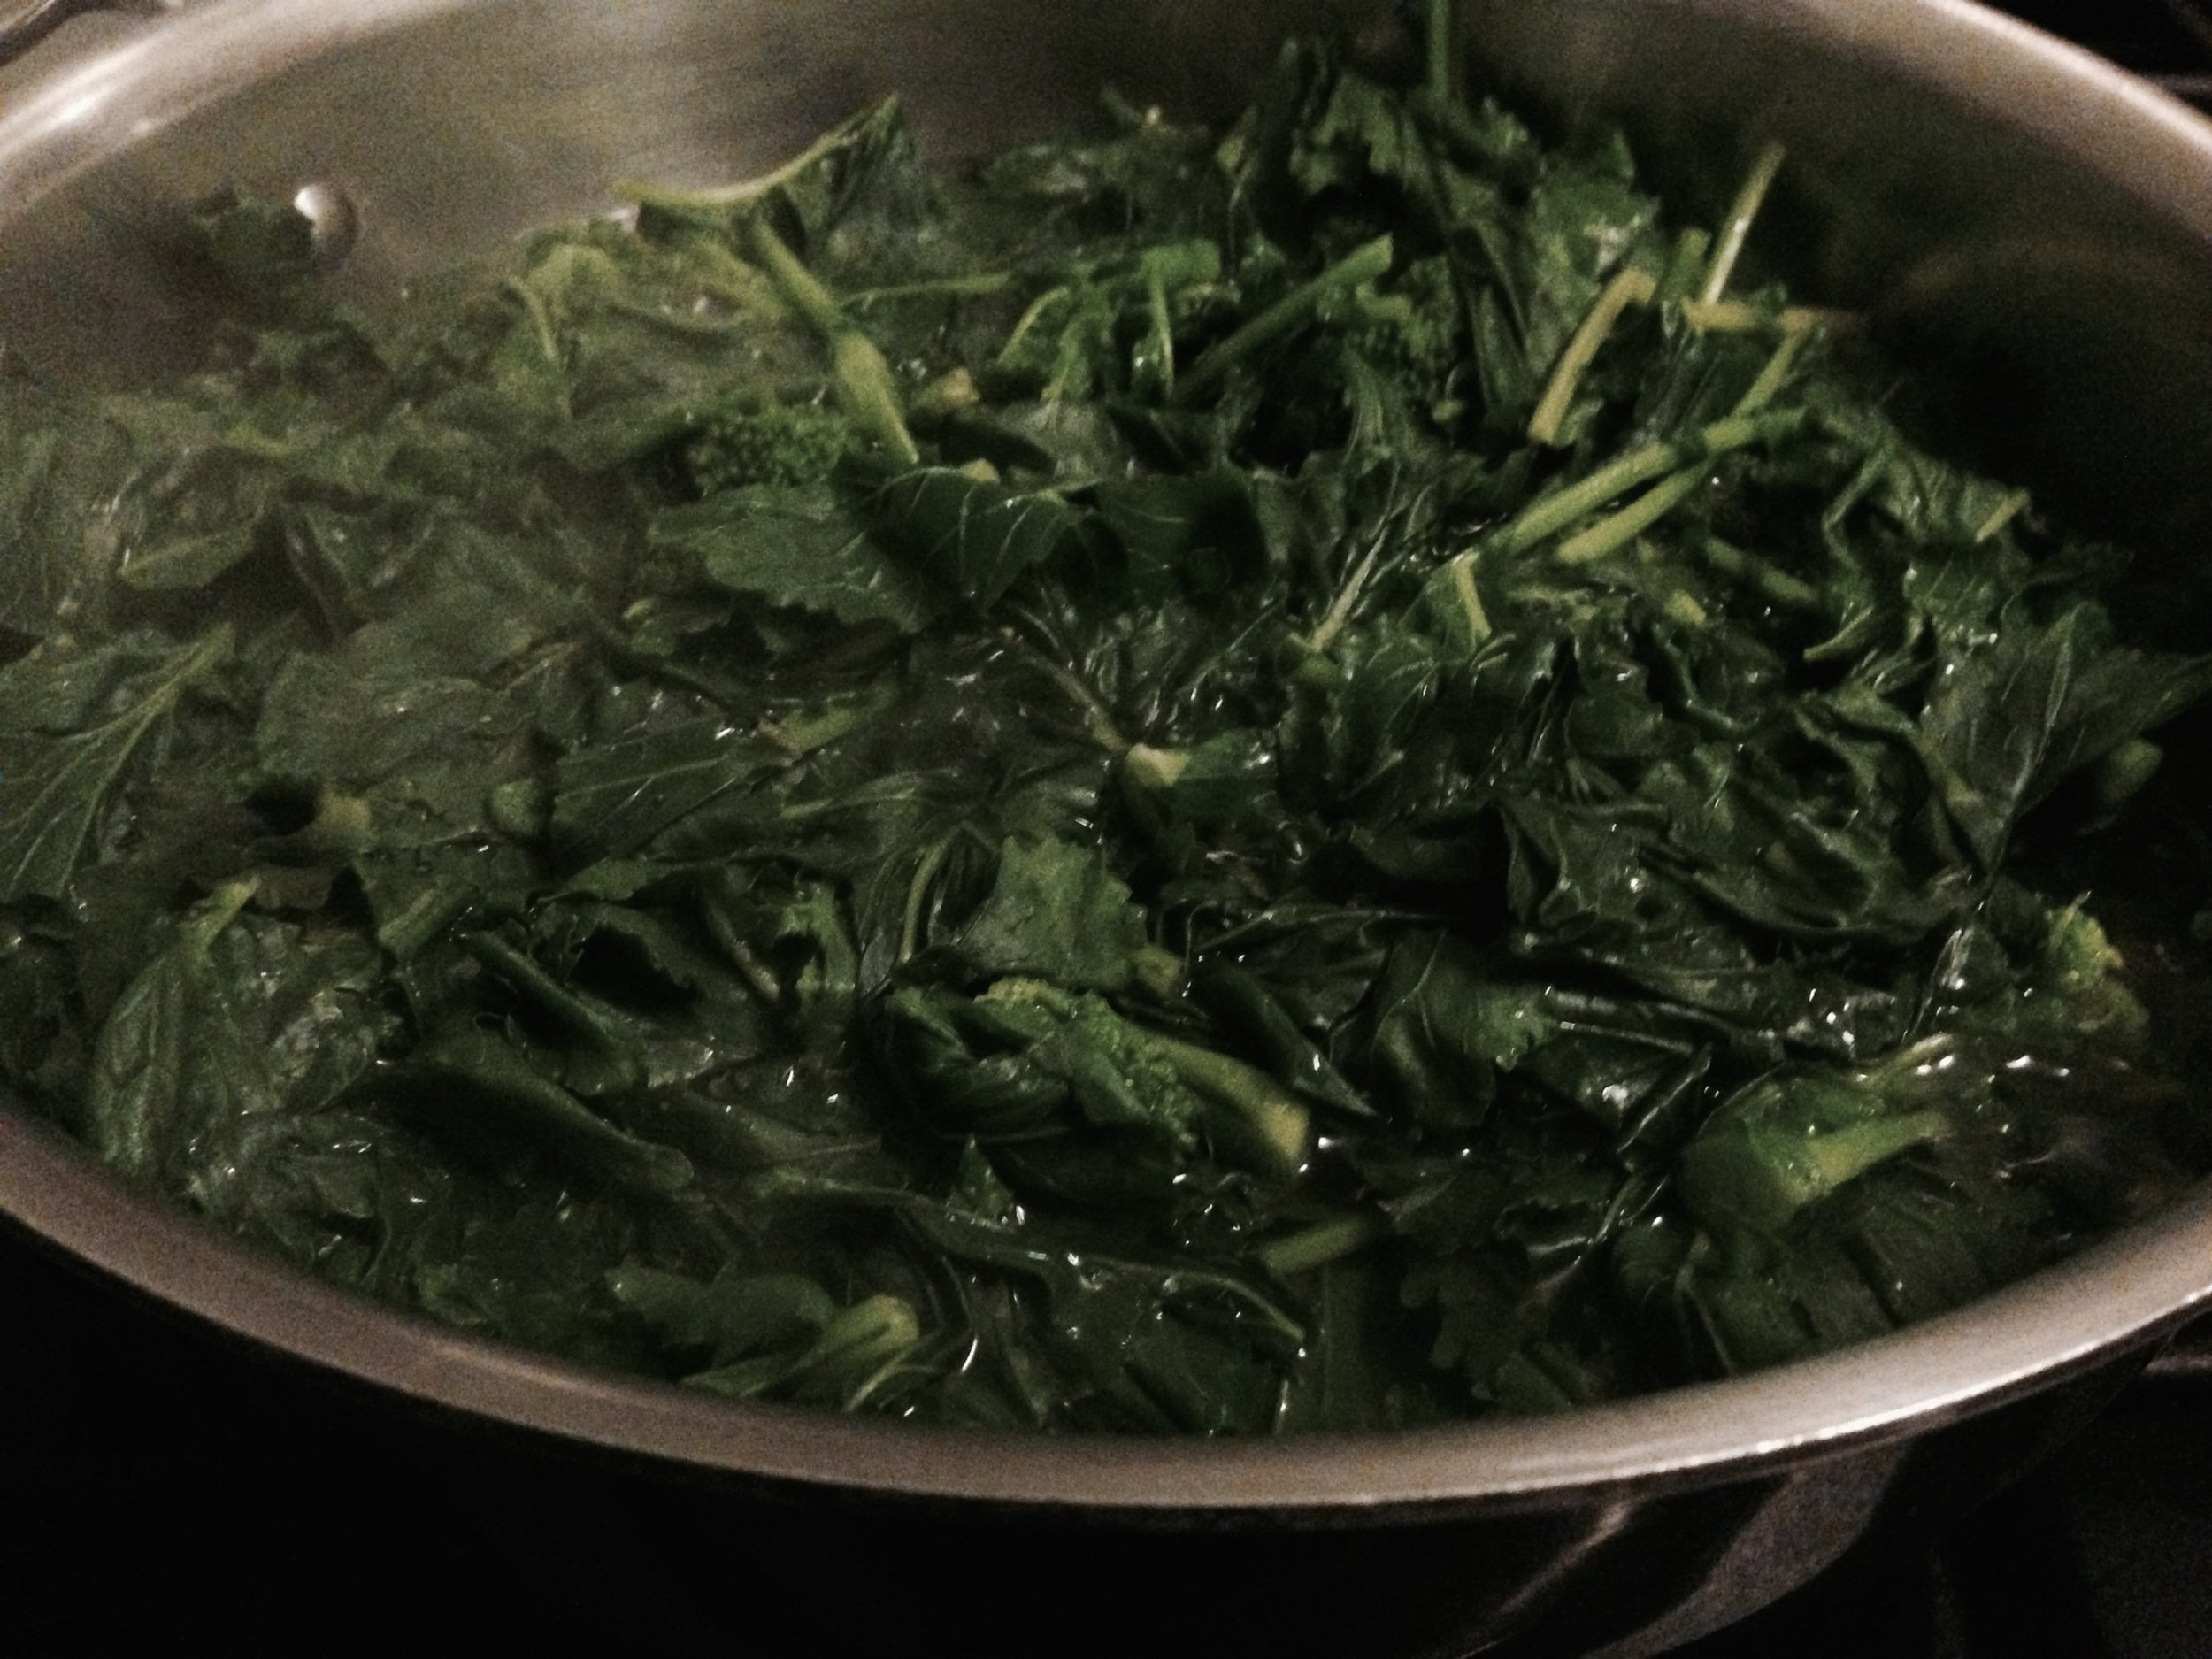 Broccoli Rabe once it wilts.